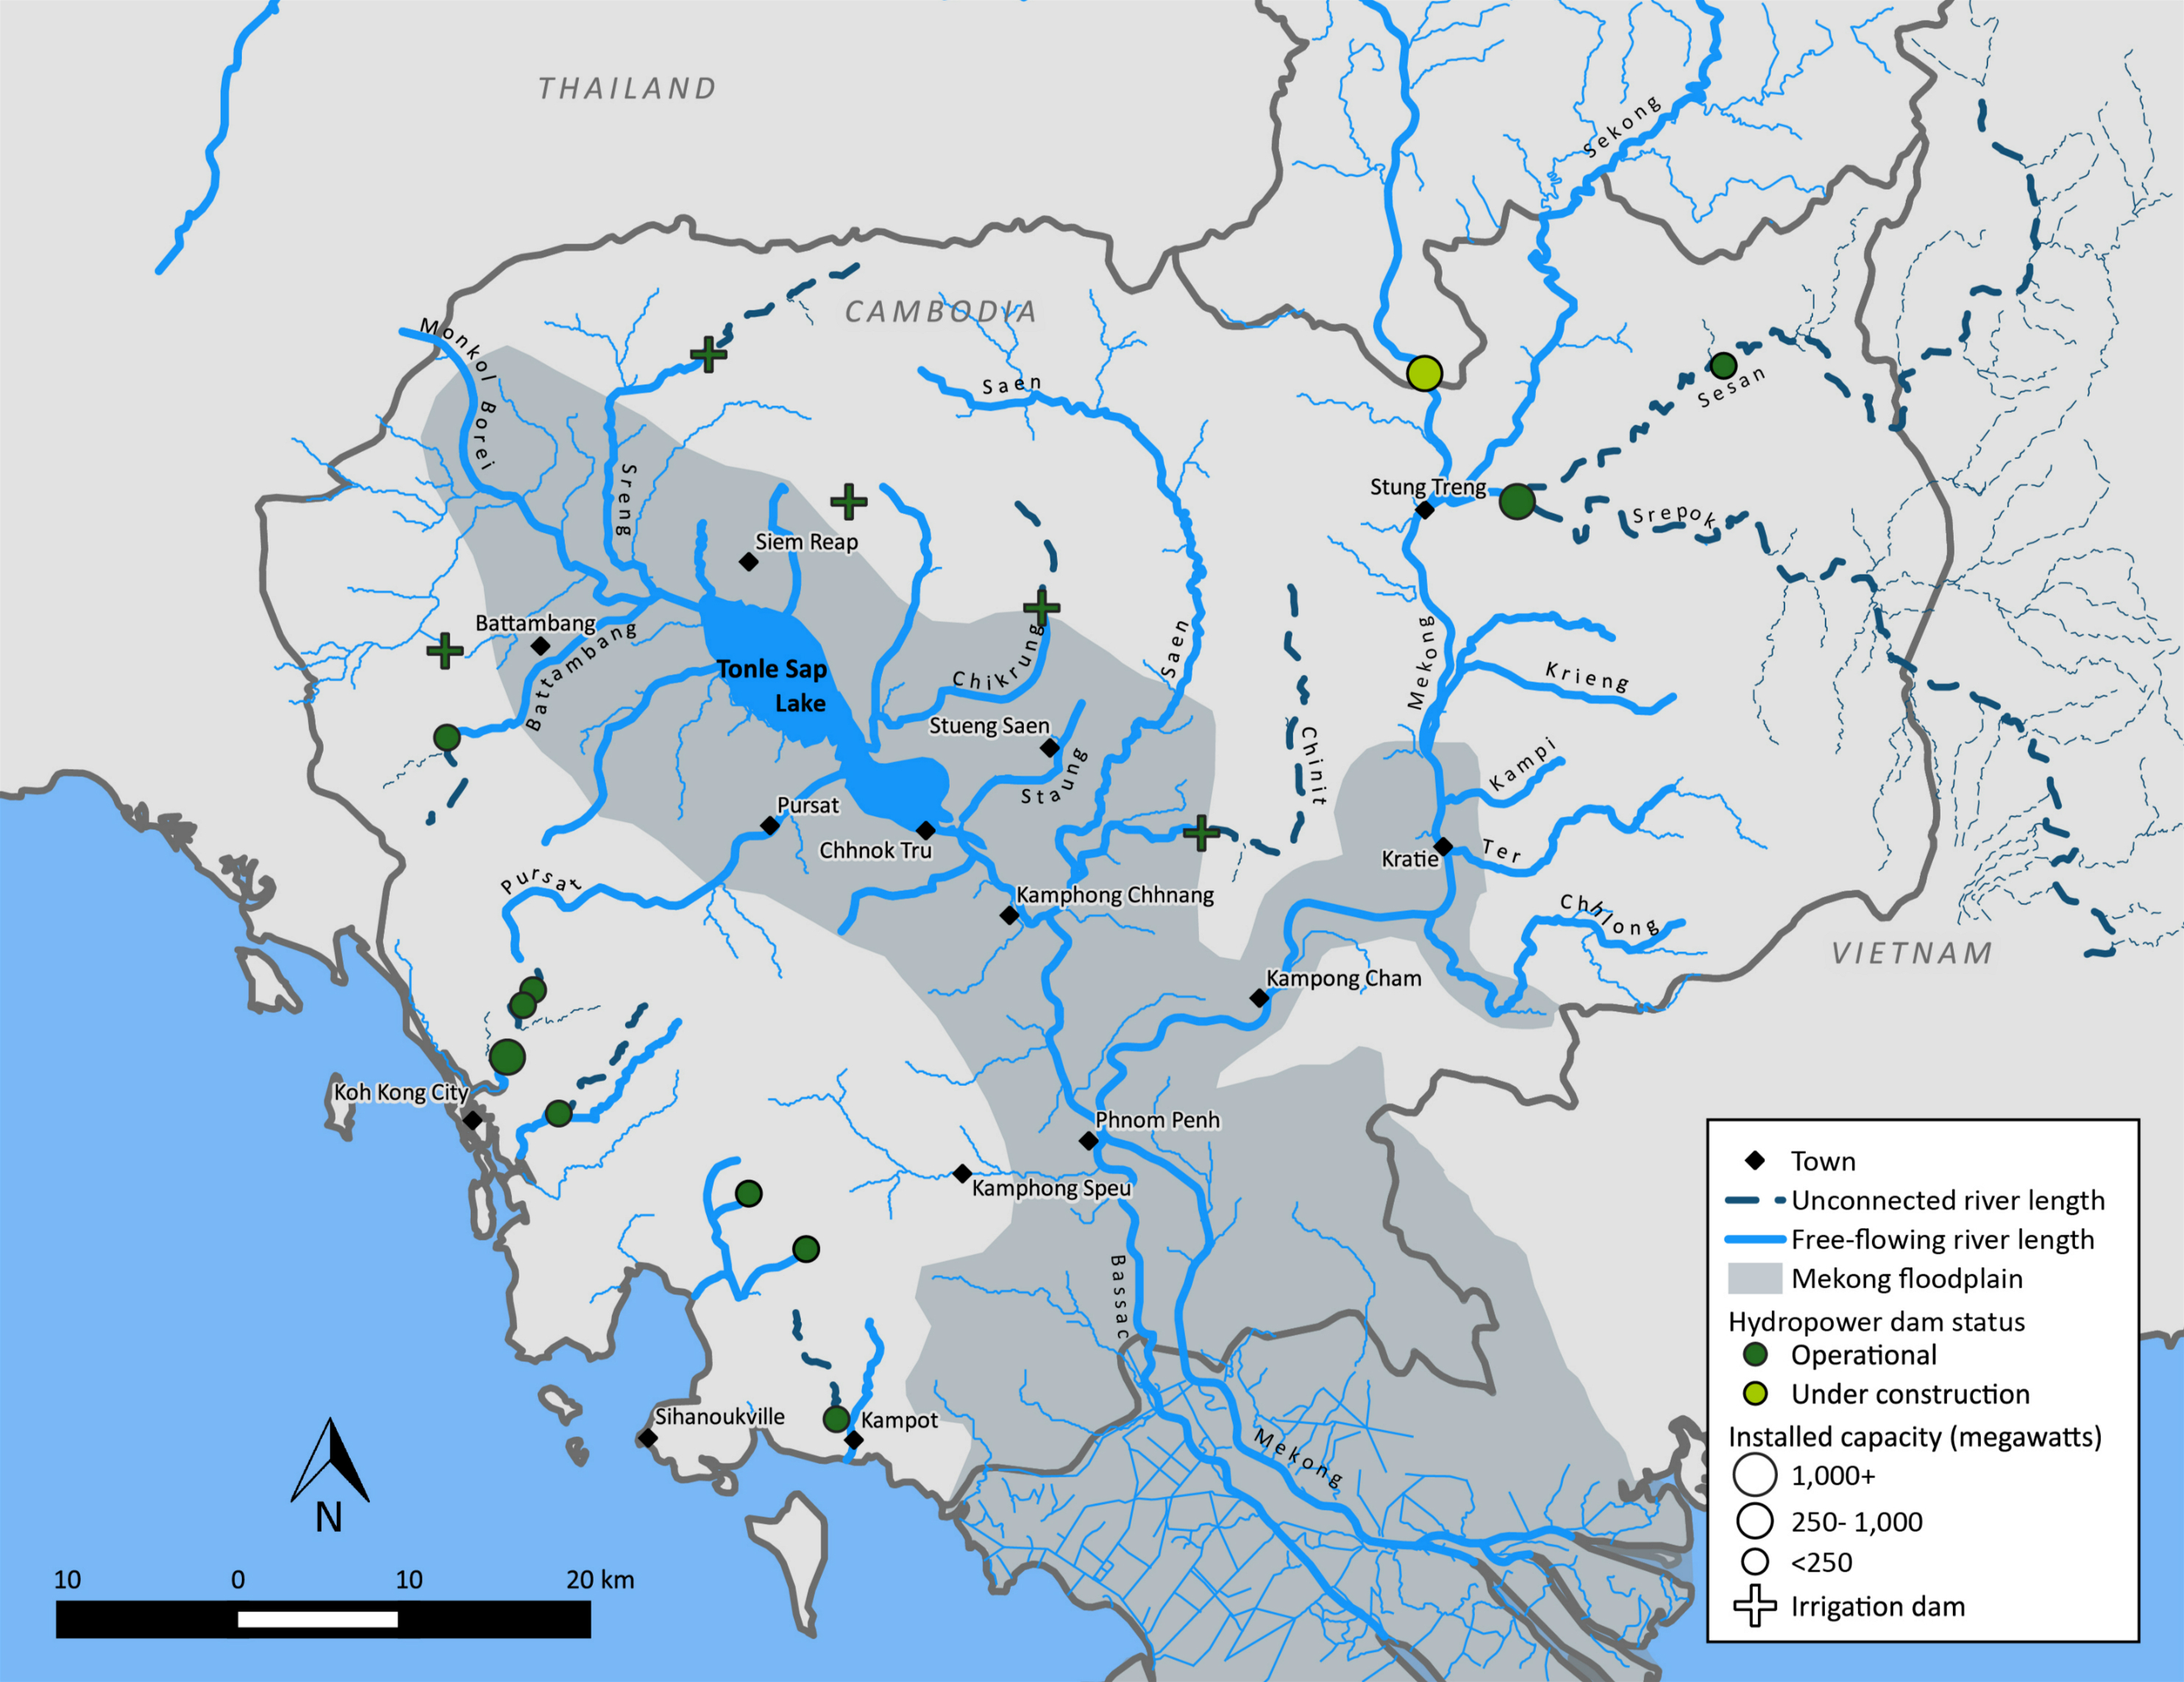 Map of the connectivity of the Tonle Sap and Mekong tributaries in Cambodia